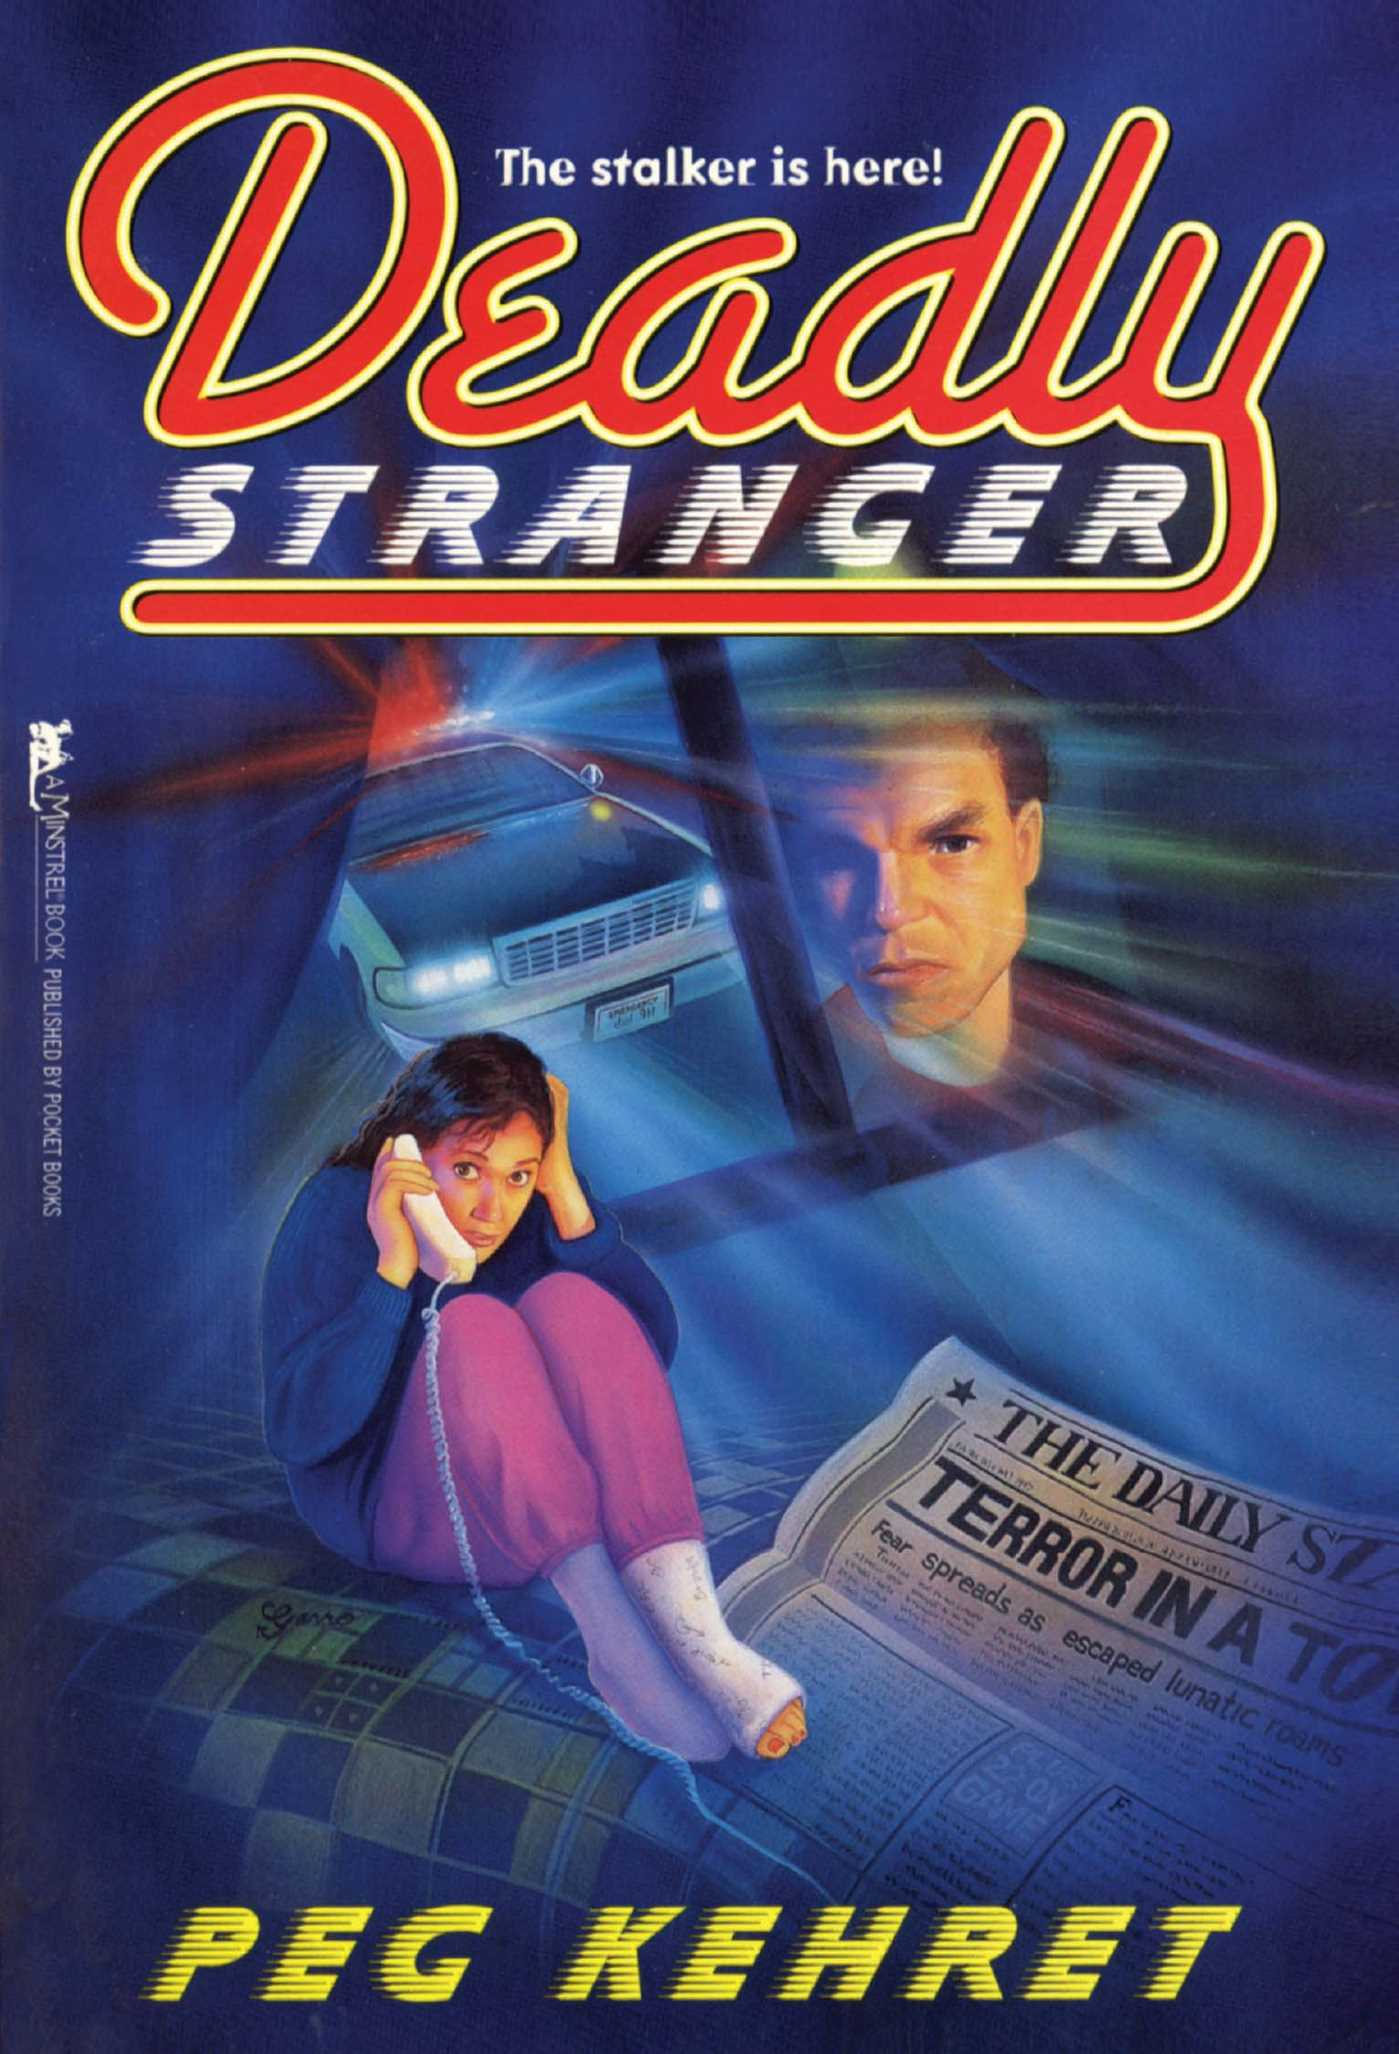 Deadly-stranger-9781442460447_hr